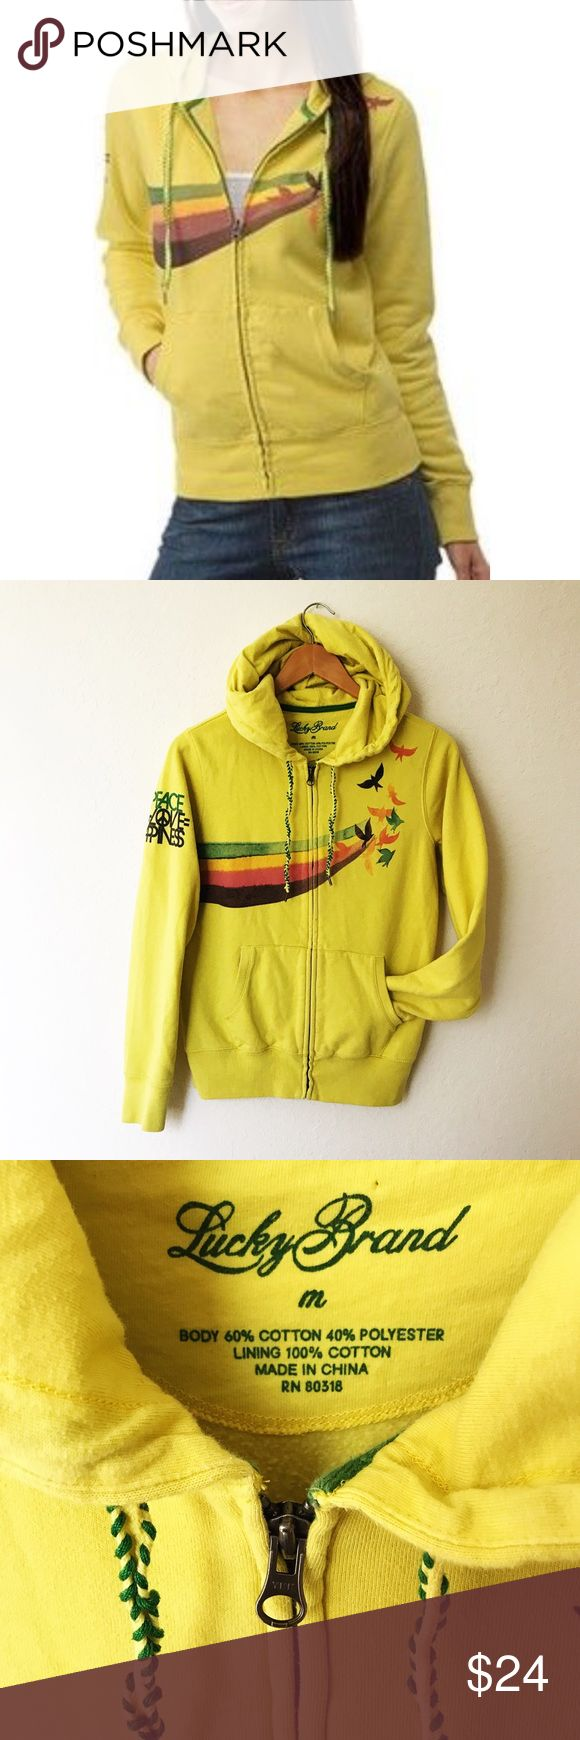 "Lucky Brand Yellow Zip Up Hoodie Sweater Very good preowned condition, no rips, stains or holes and from smoke/pet free home. Cute yellow zip-up hoodie with orange, green, yellow and brown bird Print on the front and ""peace love happiness"" written on one sleeve. Two front pockets and pull string hoodie. Cute sweater for any season. Lucky Brand Sweaters"